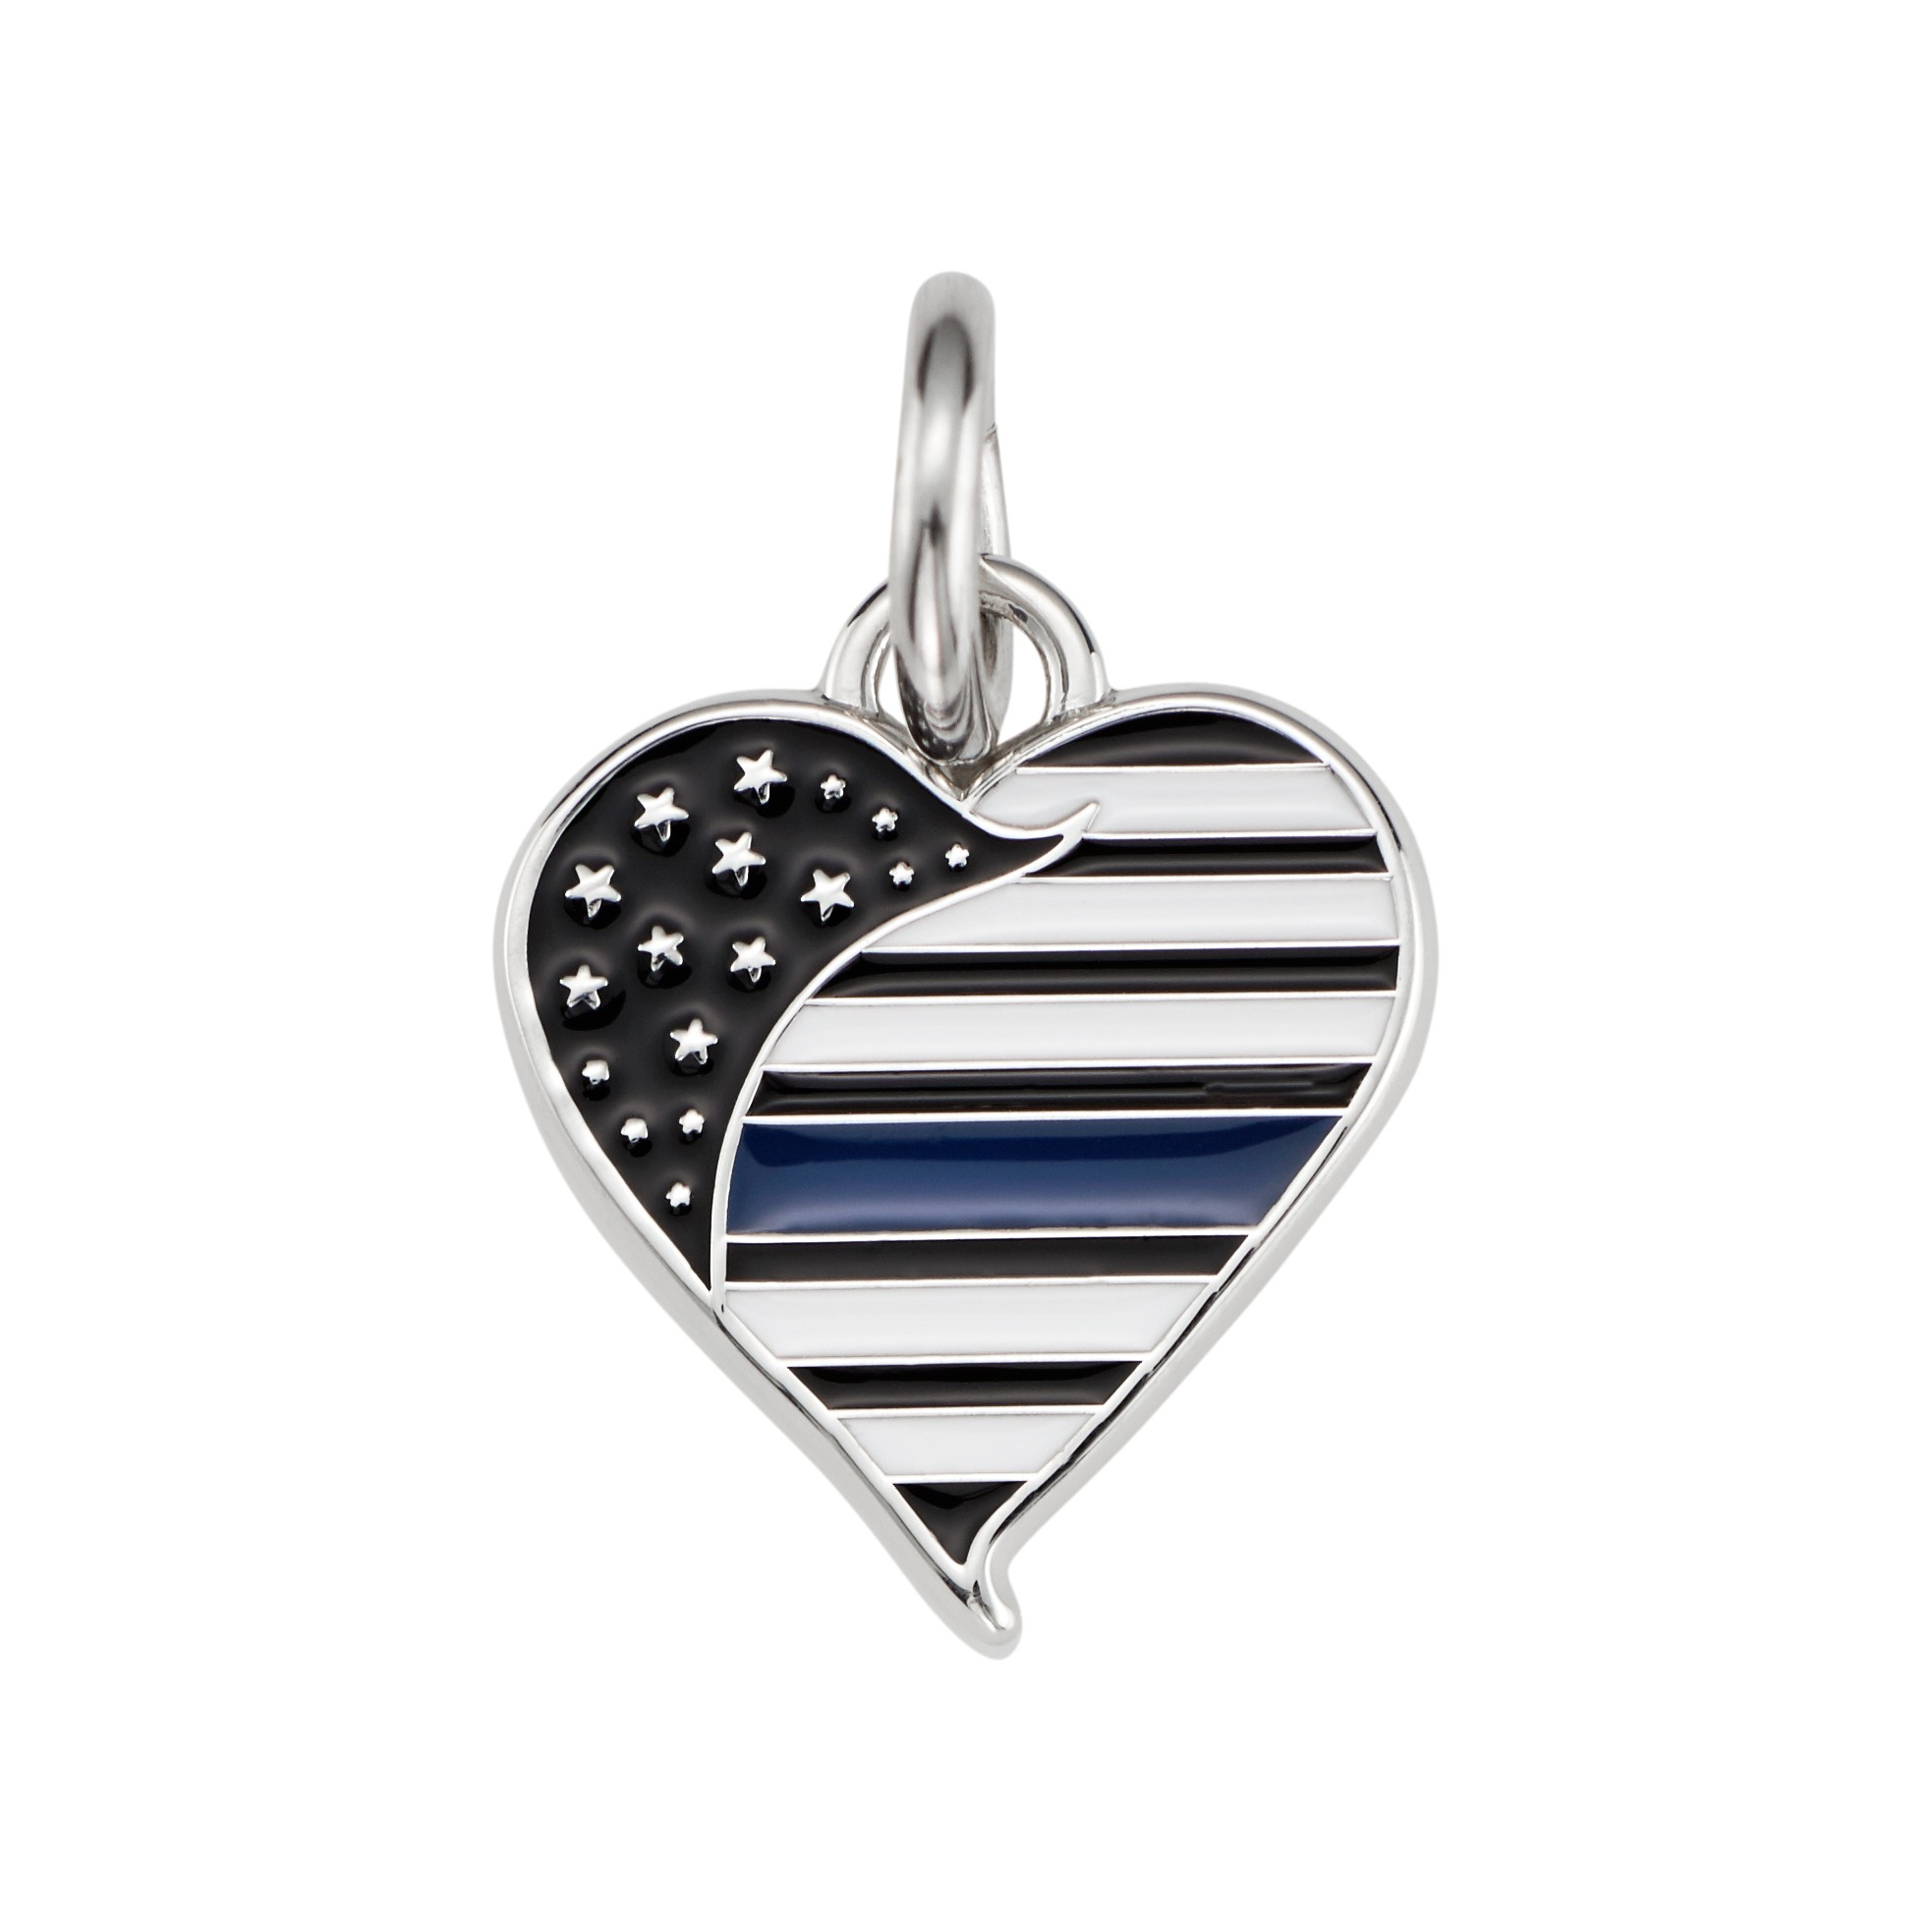 necklace zoom arrow and loading with sterling pendant police badge charms charm cut bow in silver diamond